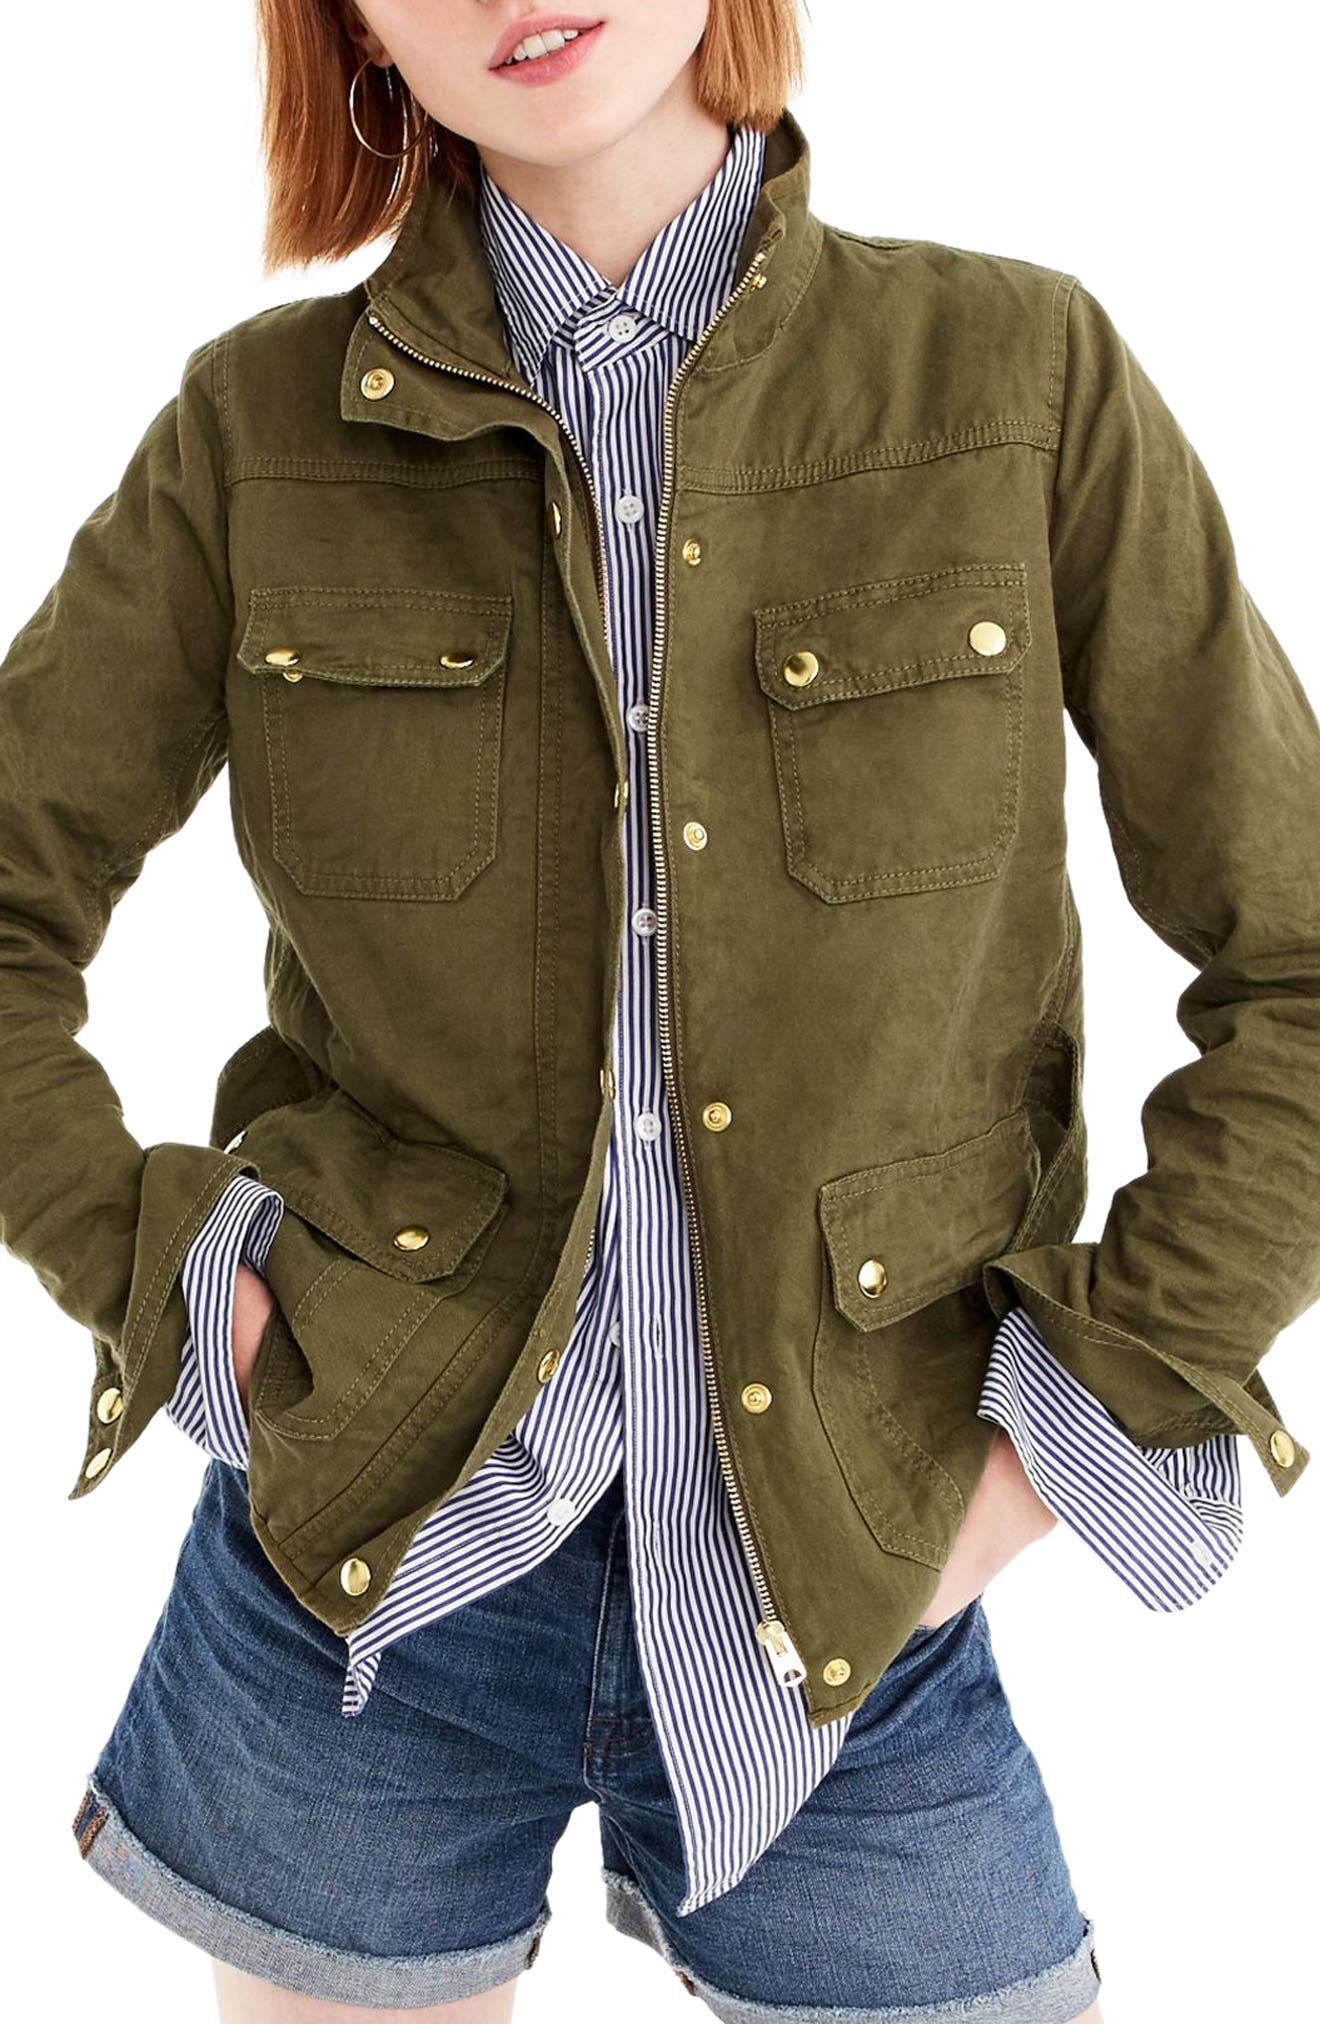 Uncoated Downtown Field Jacket,                             Main thumbnail 1, color,                             Tuscan Olive